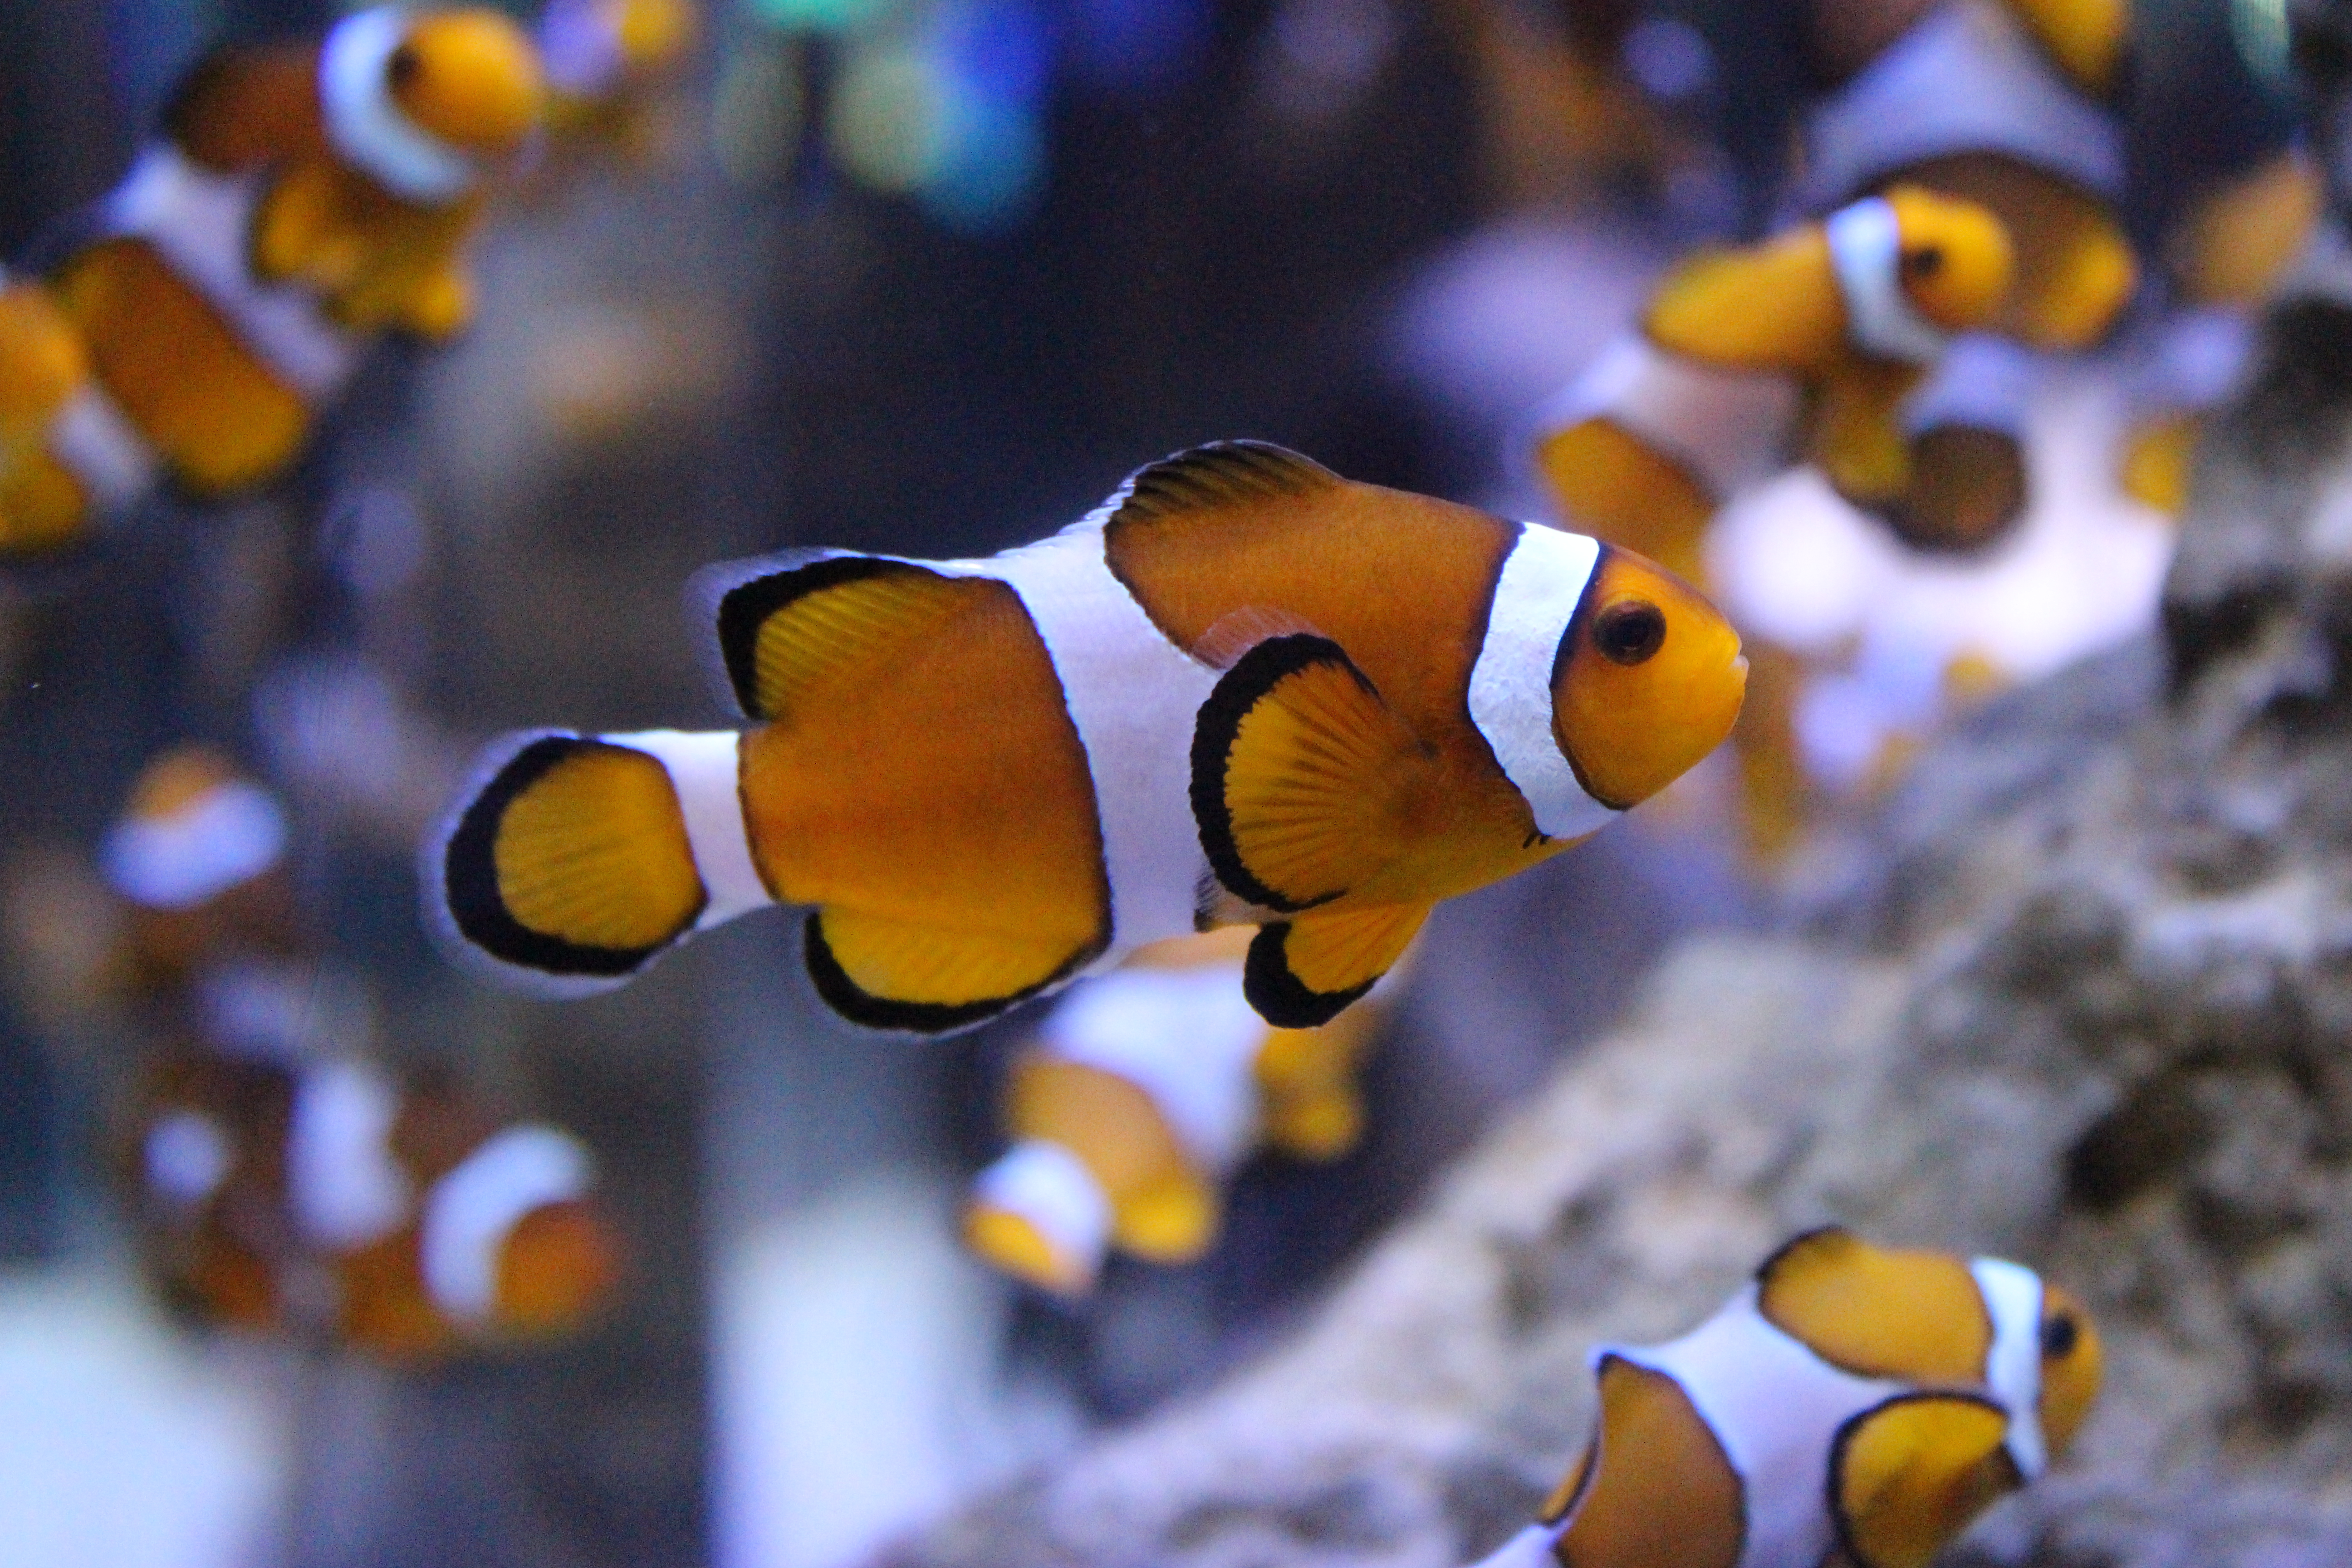 Discover The Hidden Secrets Of The Western Clownfish Species